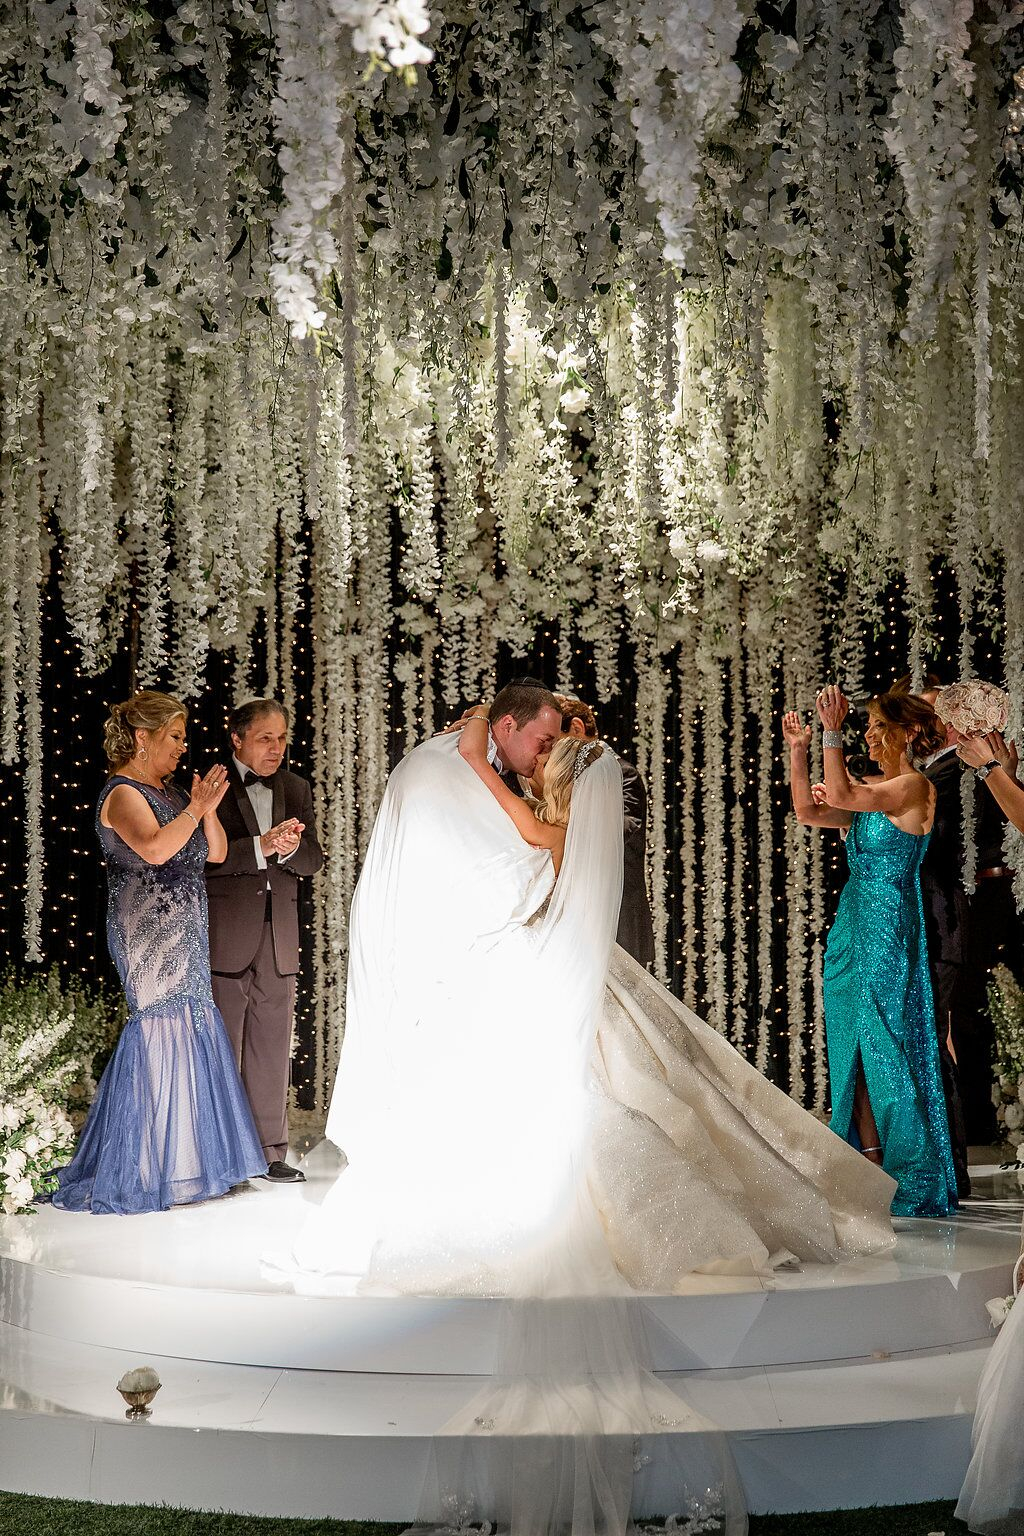 revelry event designers, beverly hills, wedding ceremony